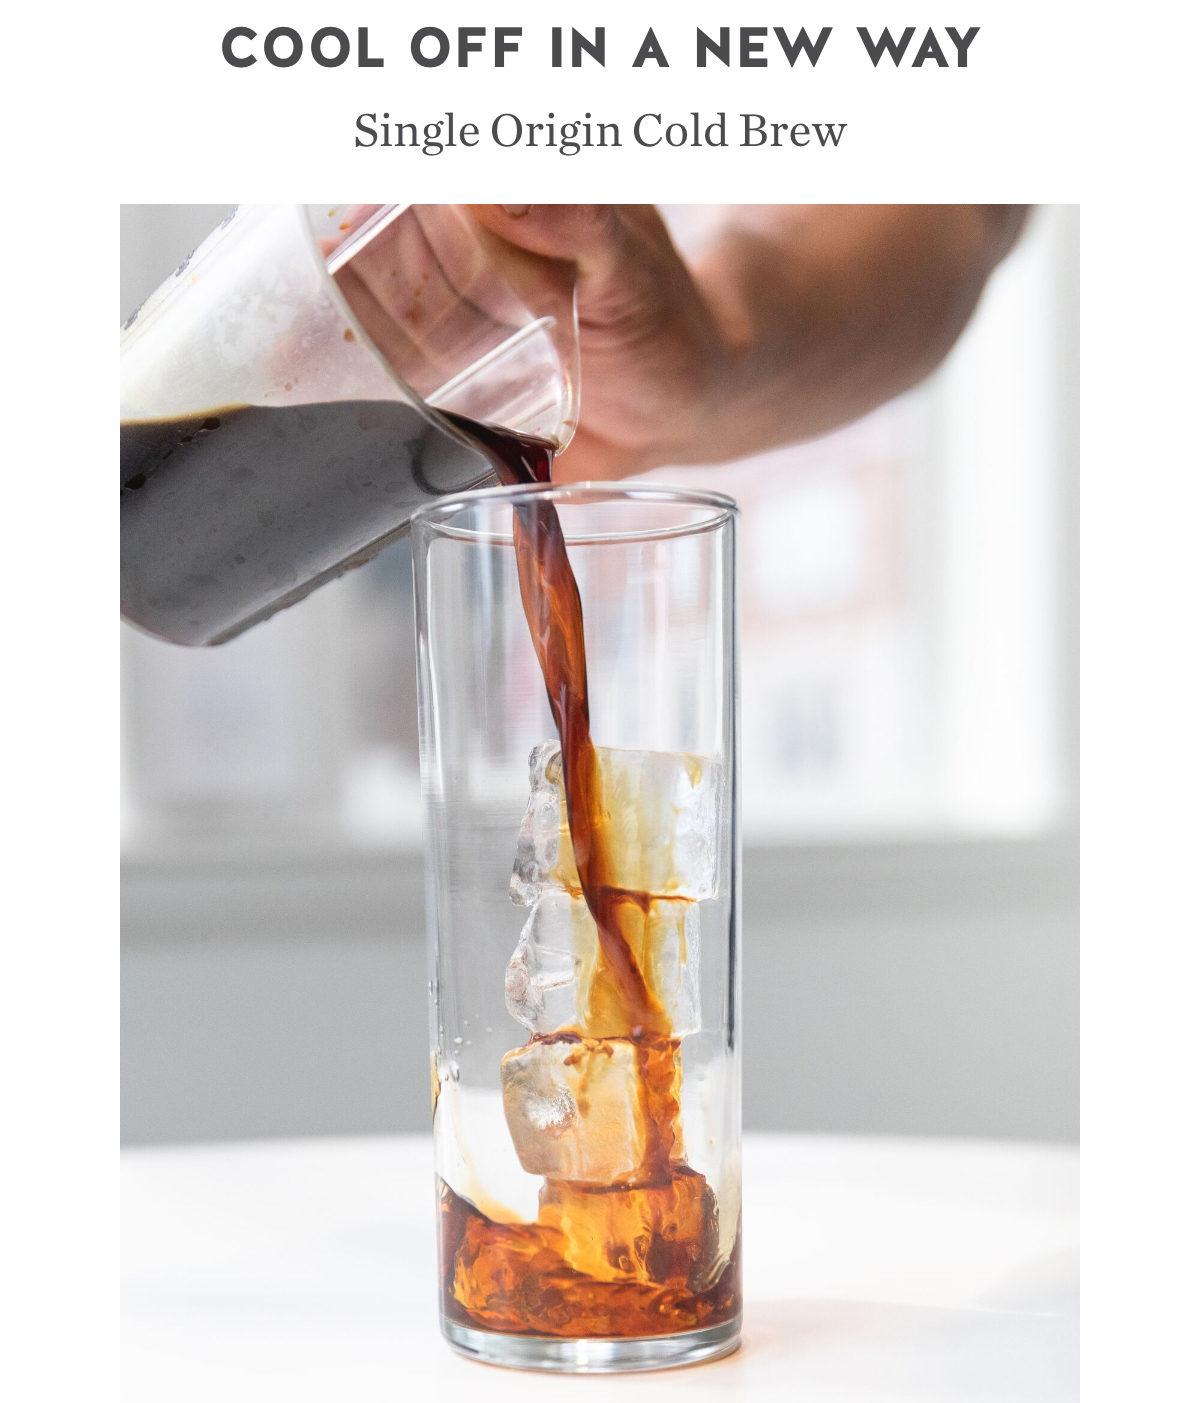 Cool off in a new way. Single origin cold brew.